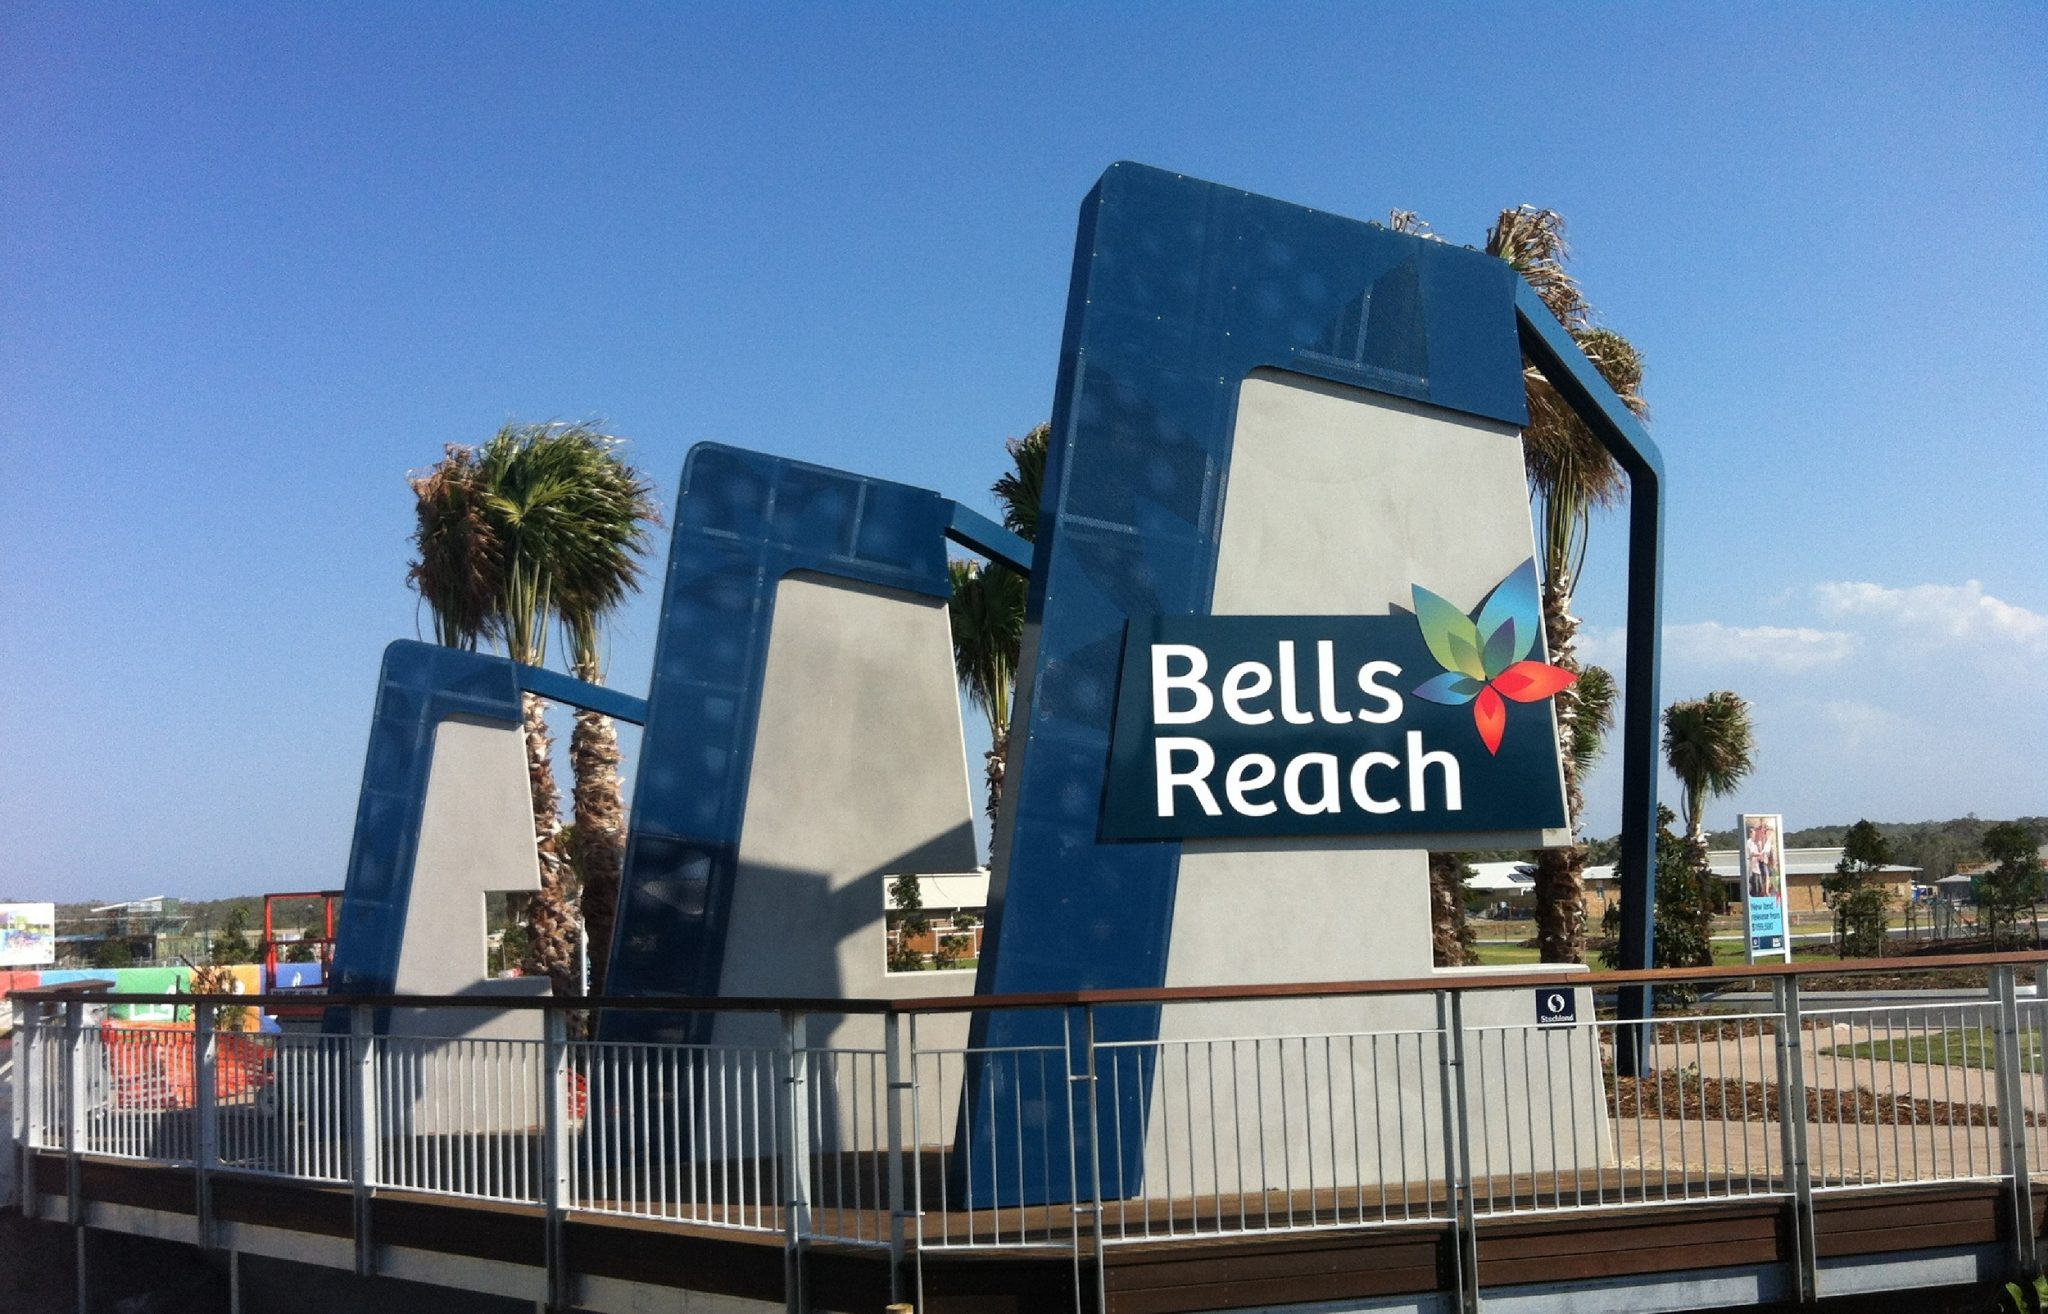 Bells Reach Entrance Structures